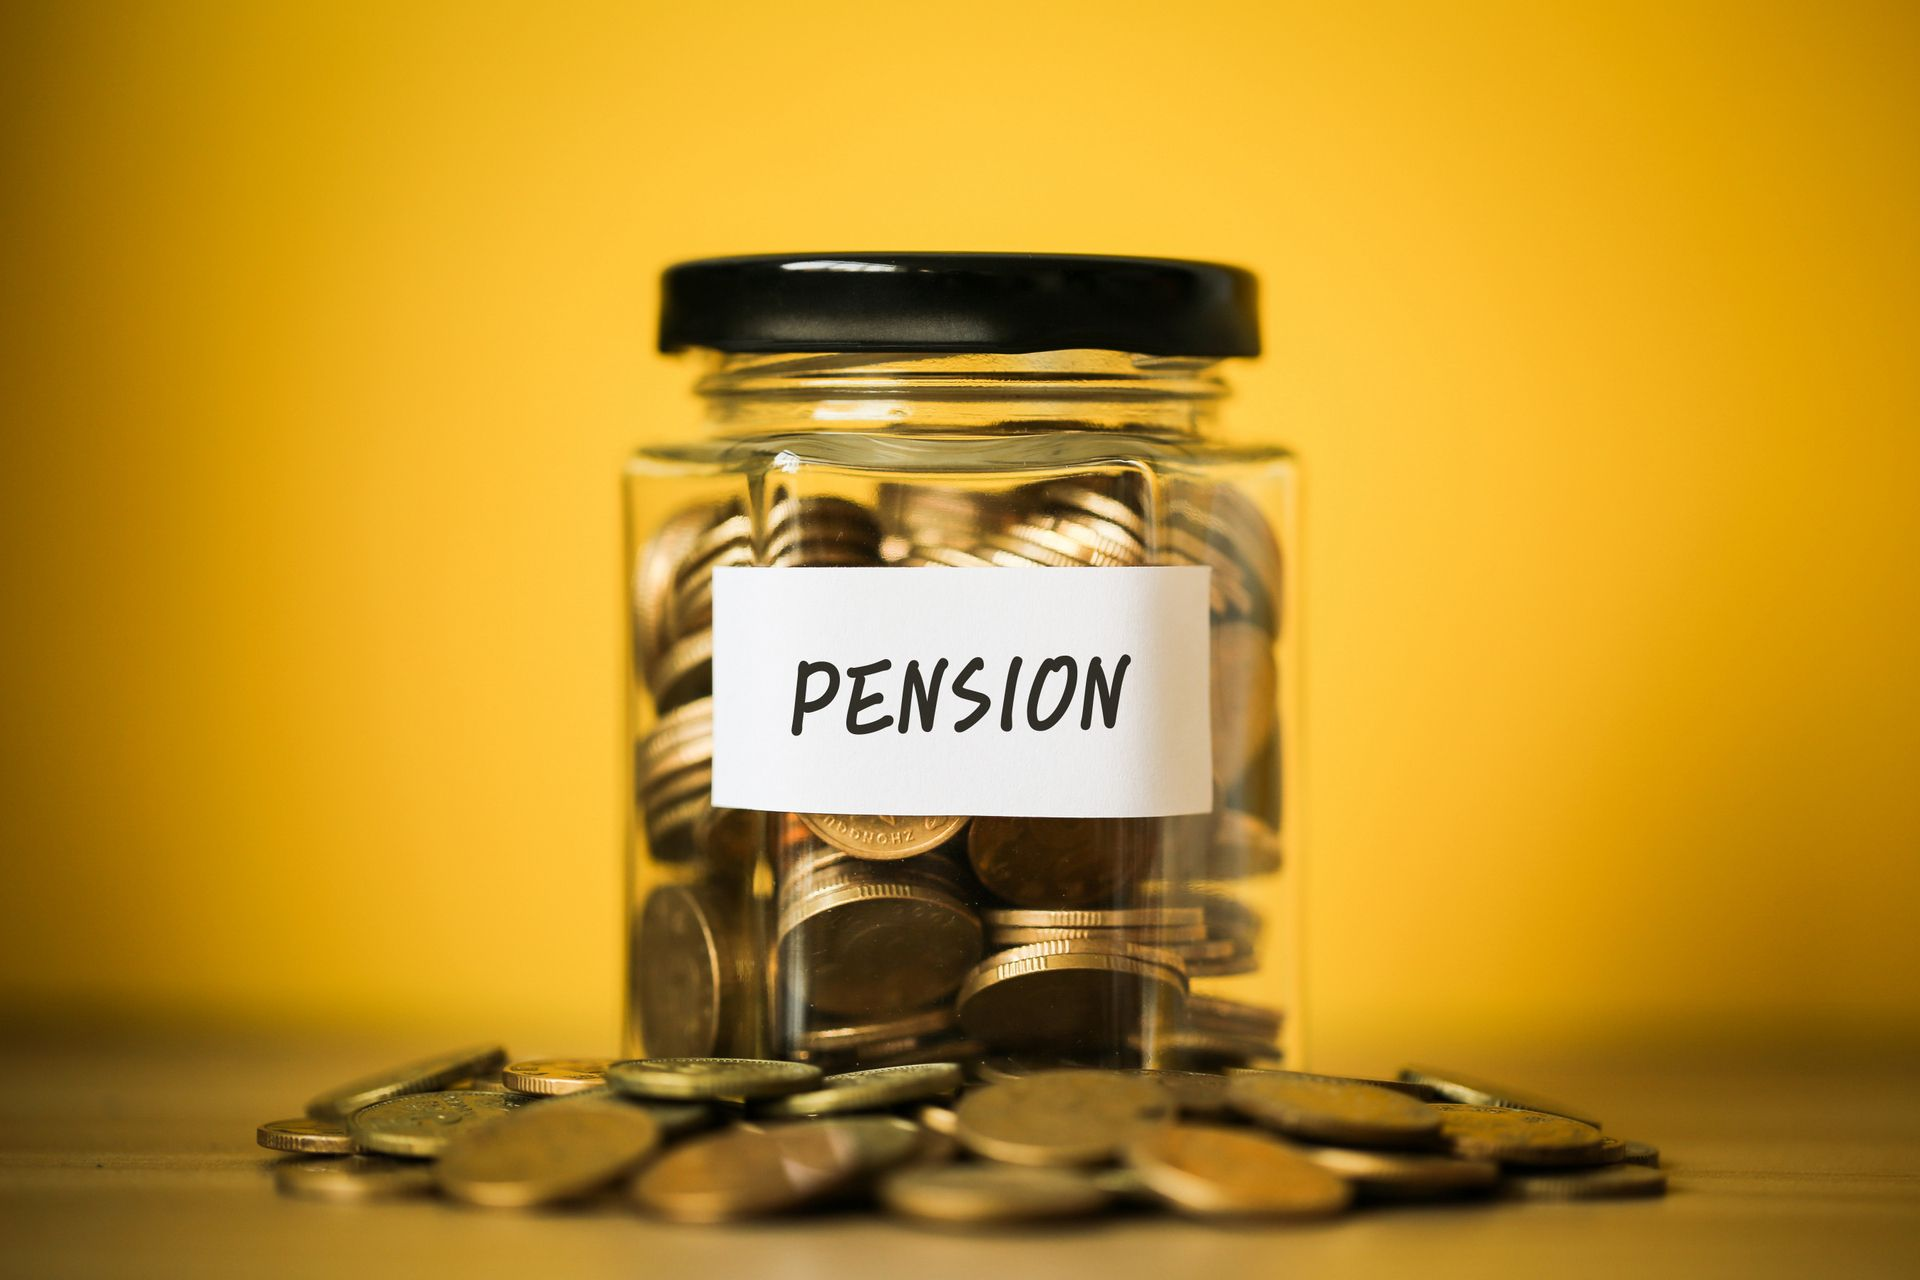 Pension jar - Independent Financial Planning – Stonehouse